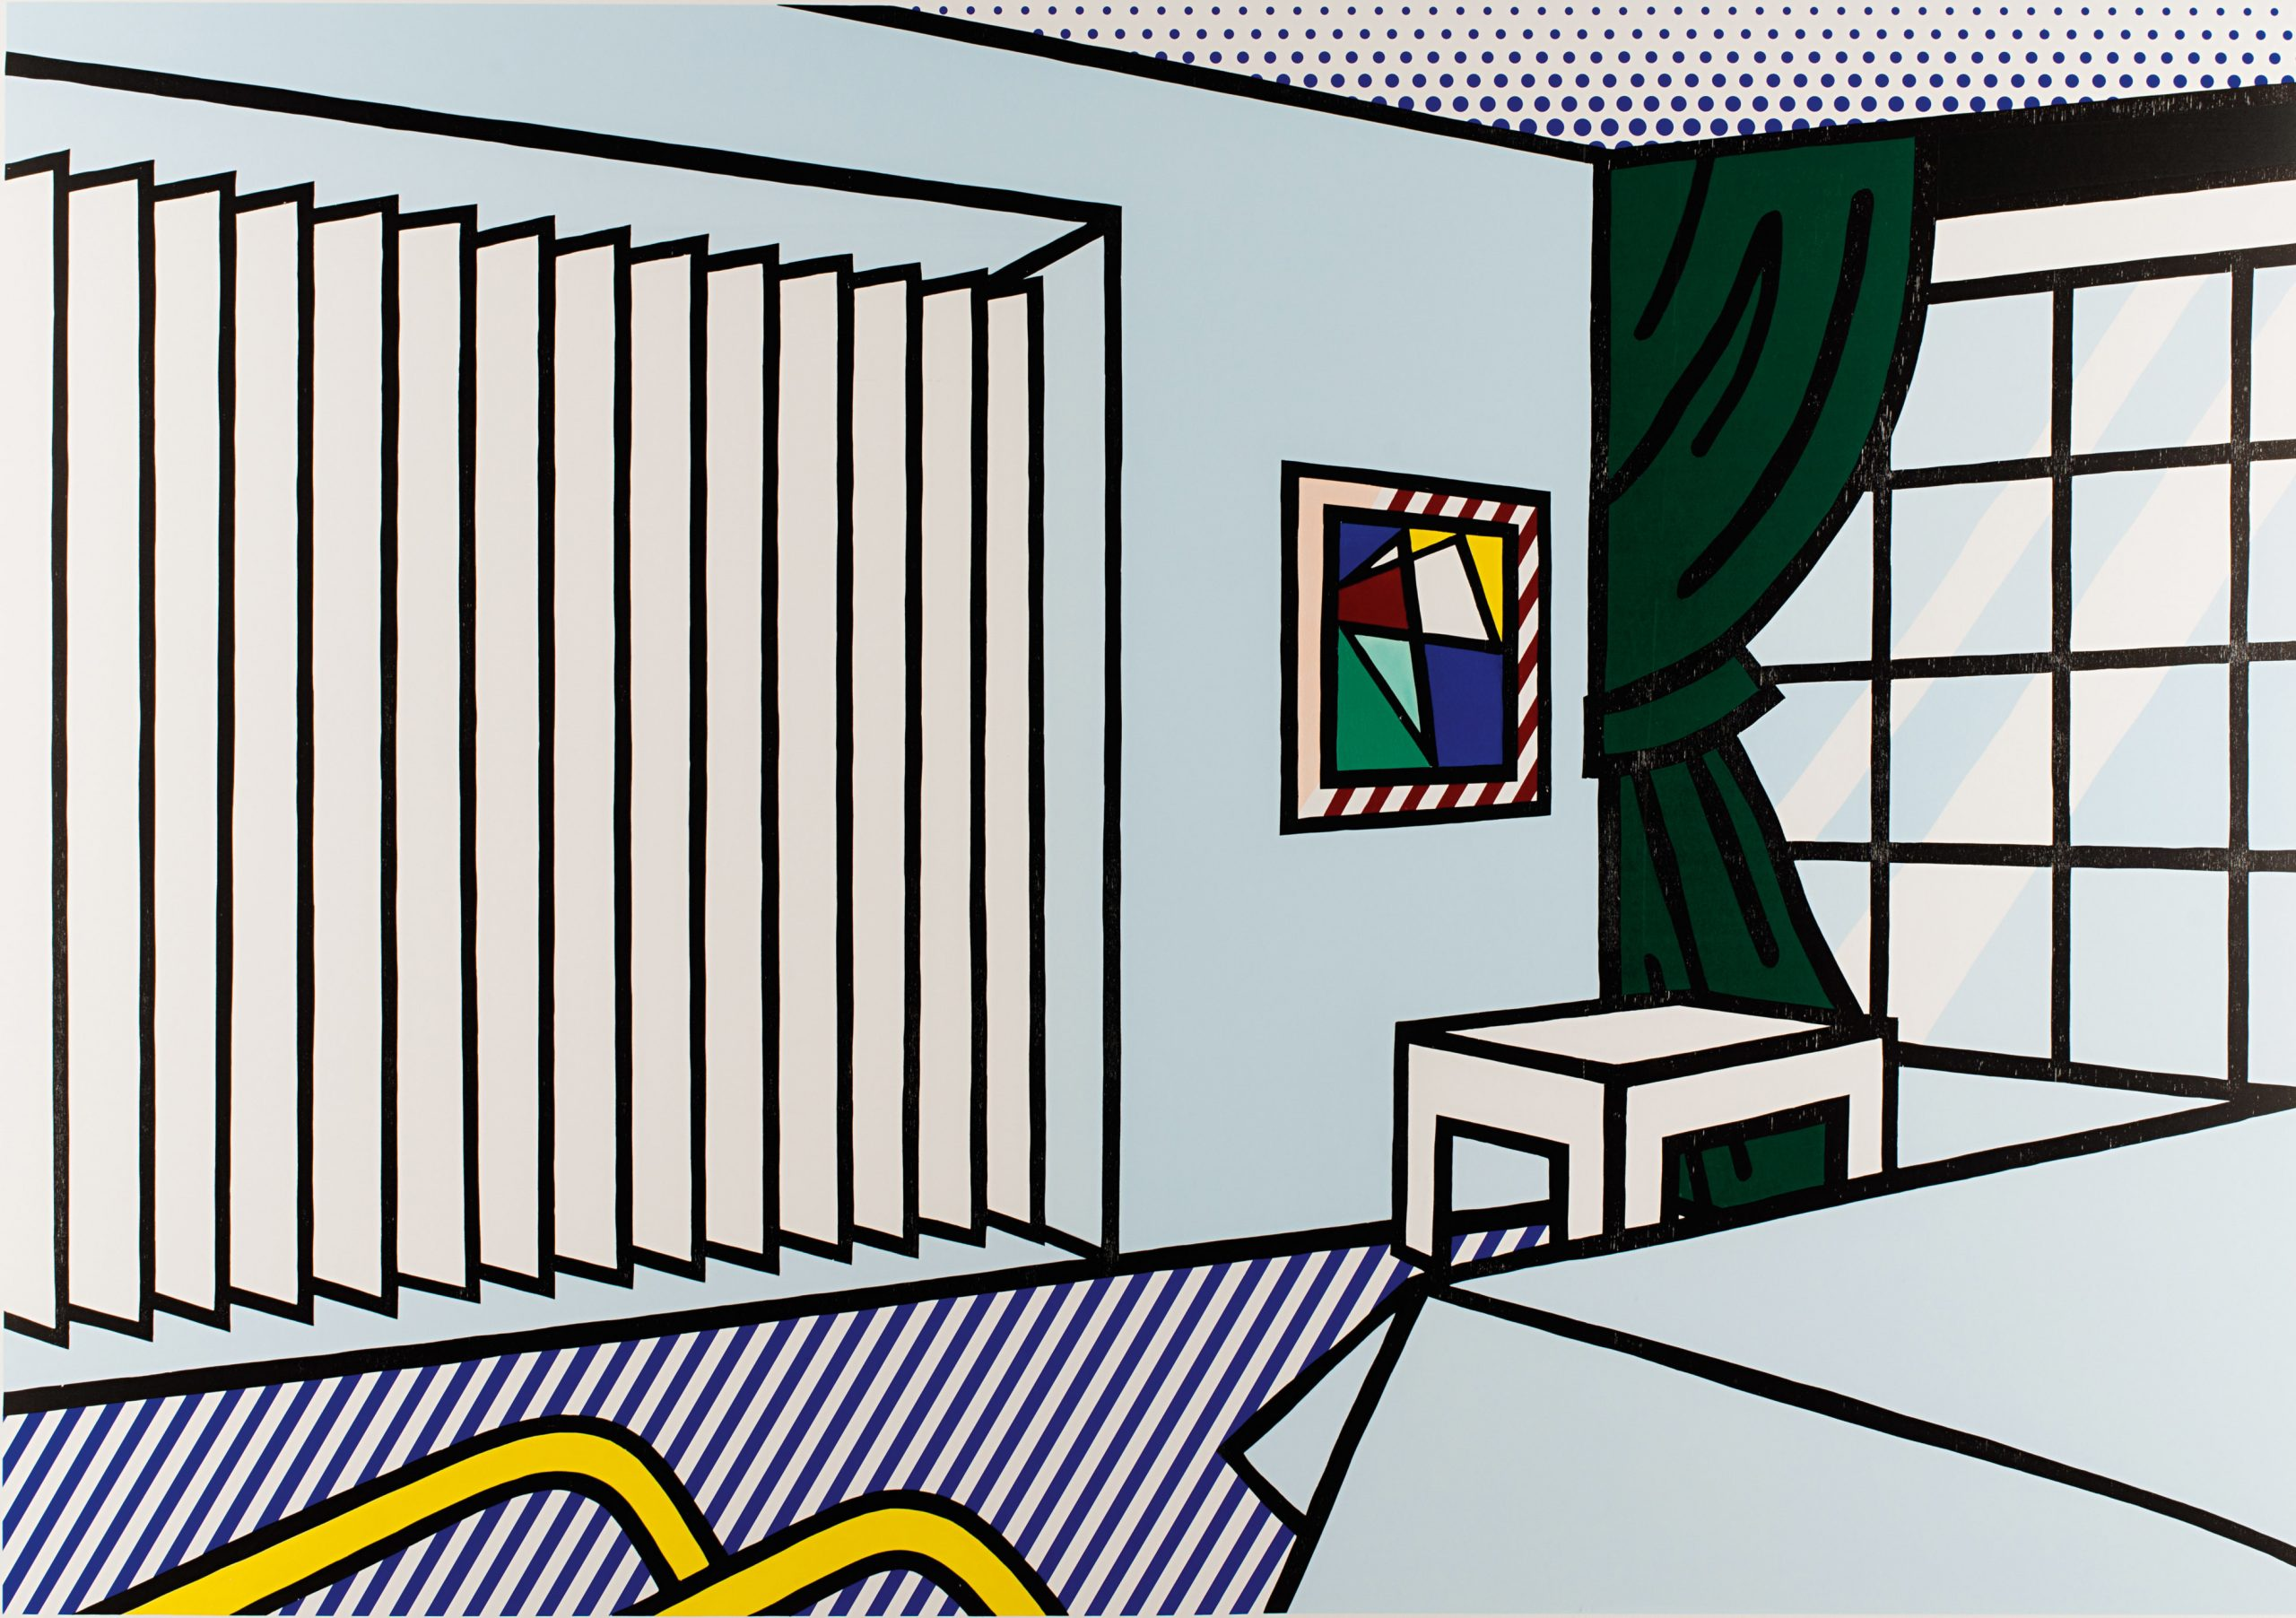 Bedroom (from Interior Series) by Roy Lichtenstein